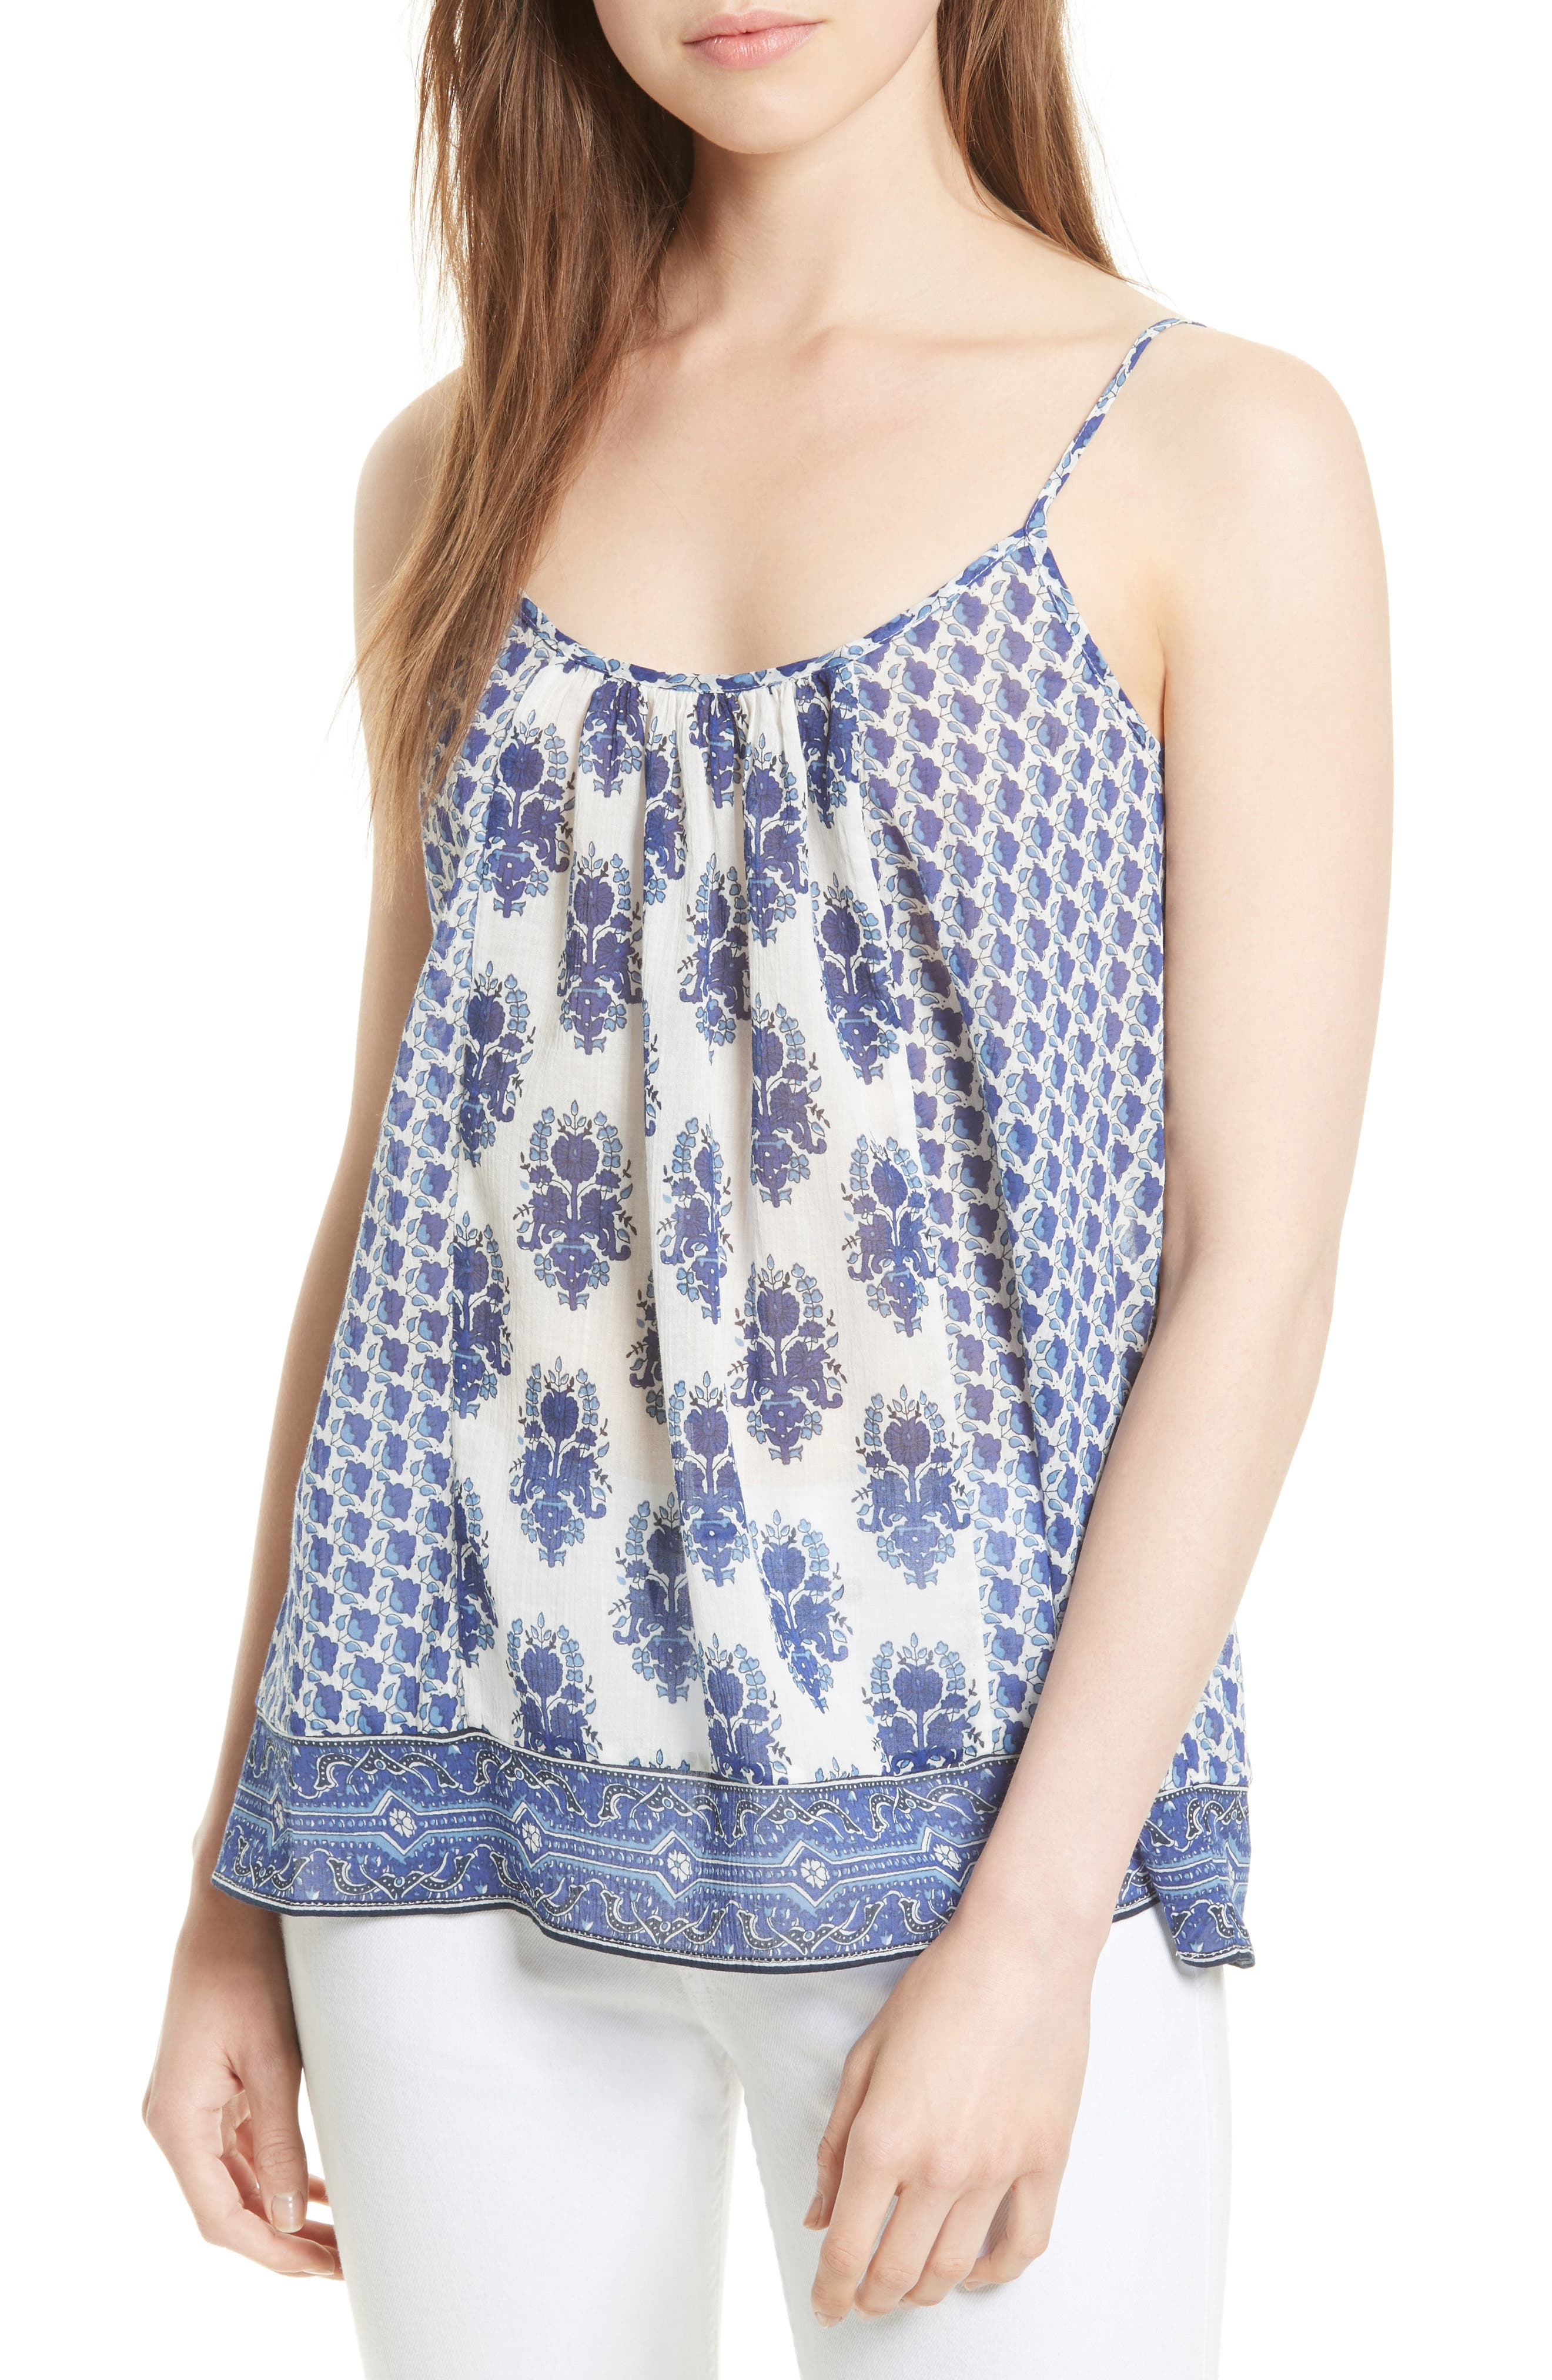 Soft Joie 'Sparkle' Block Print Cotton Tank